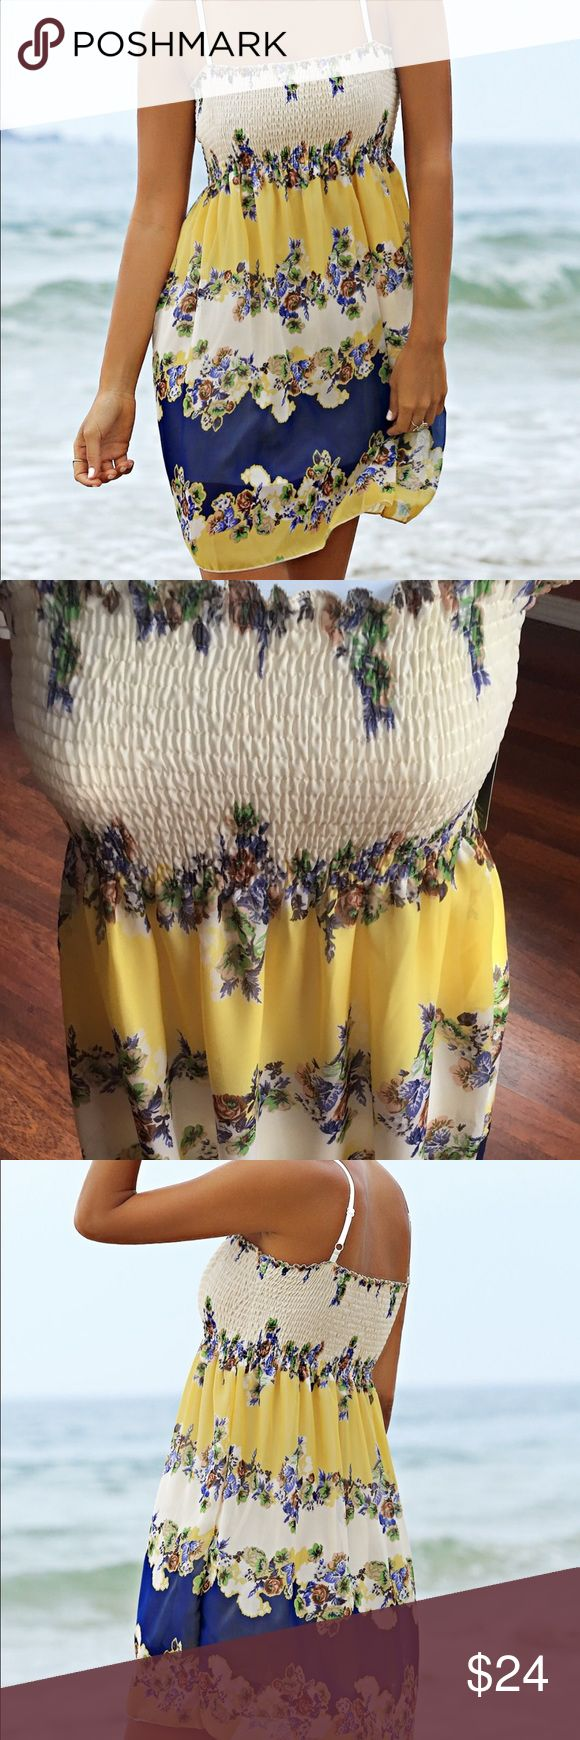 Spaghetti Strap Floral Print Color Block Dress Sweet perfect beach dress has floral print and spaghetti straps. Has that ruched across the chest and fits XS to M. Boutique brand, so it has boutique name on tag. Boutique Dresses Mini